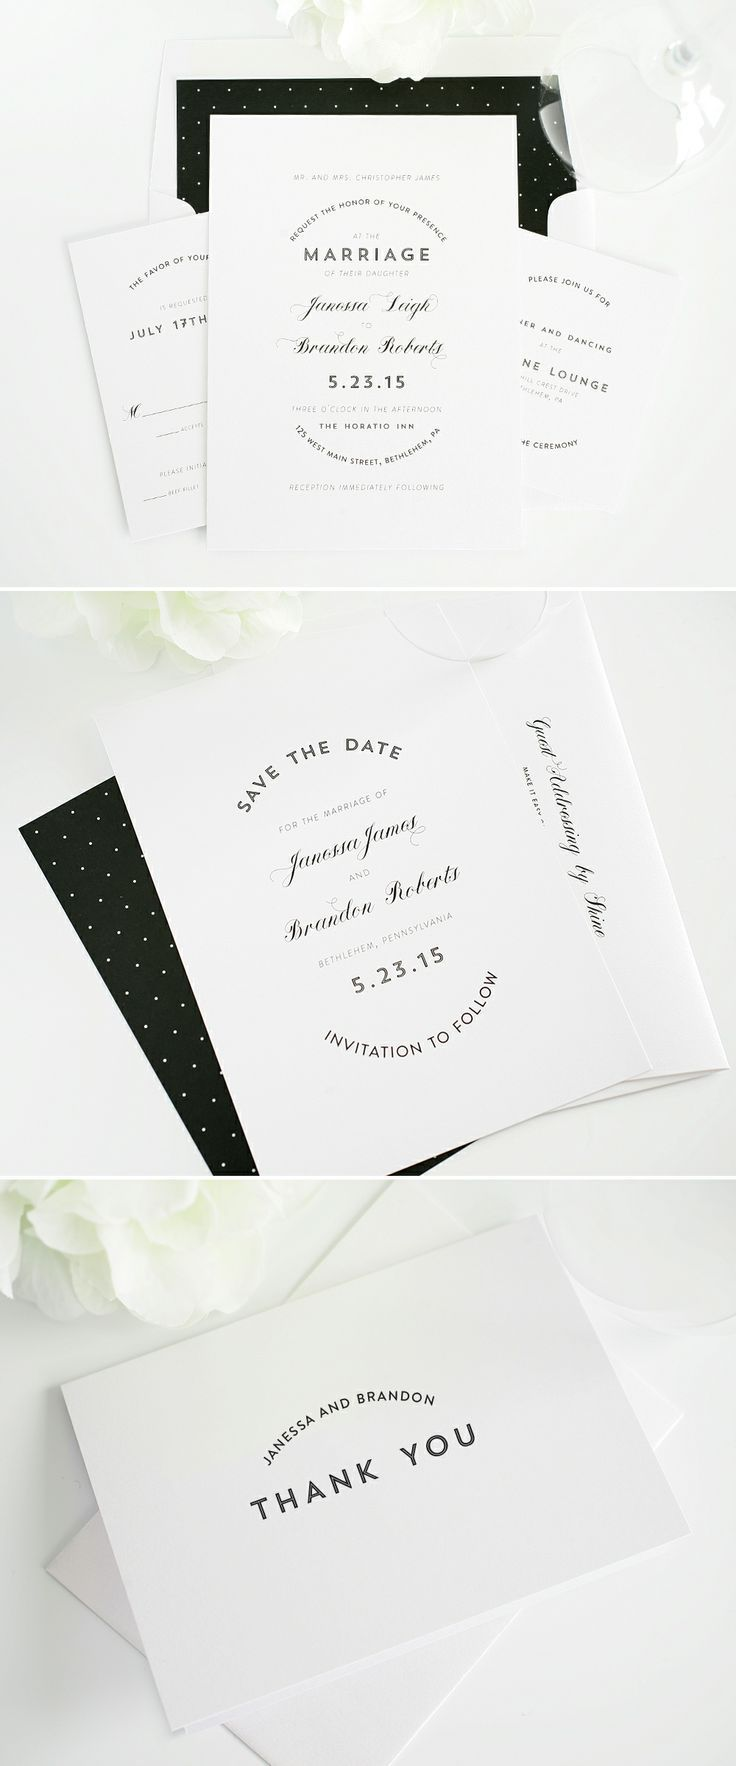 30 Gorgeous Wedding Invitation Ideas from Pinterest | StyleCaster